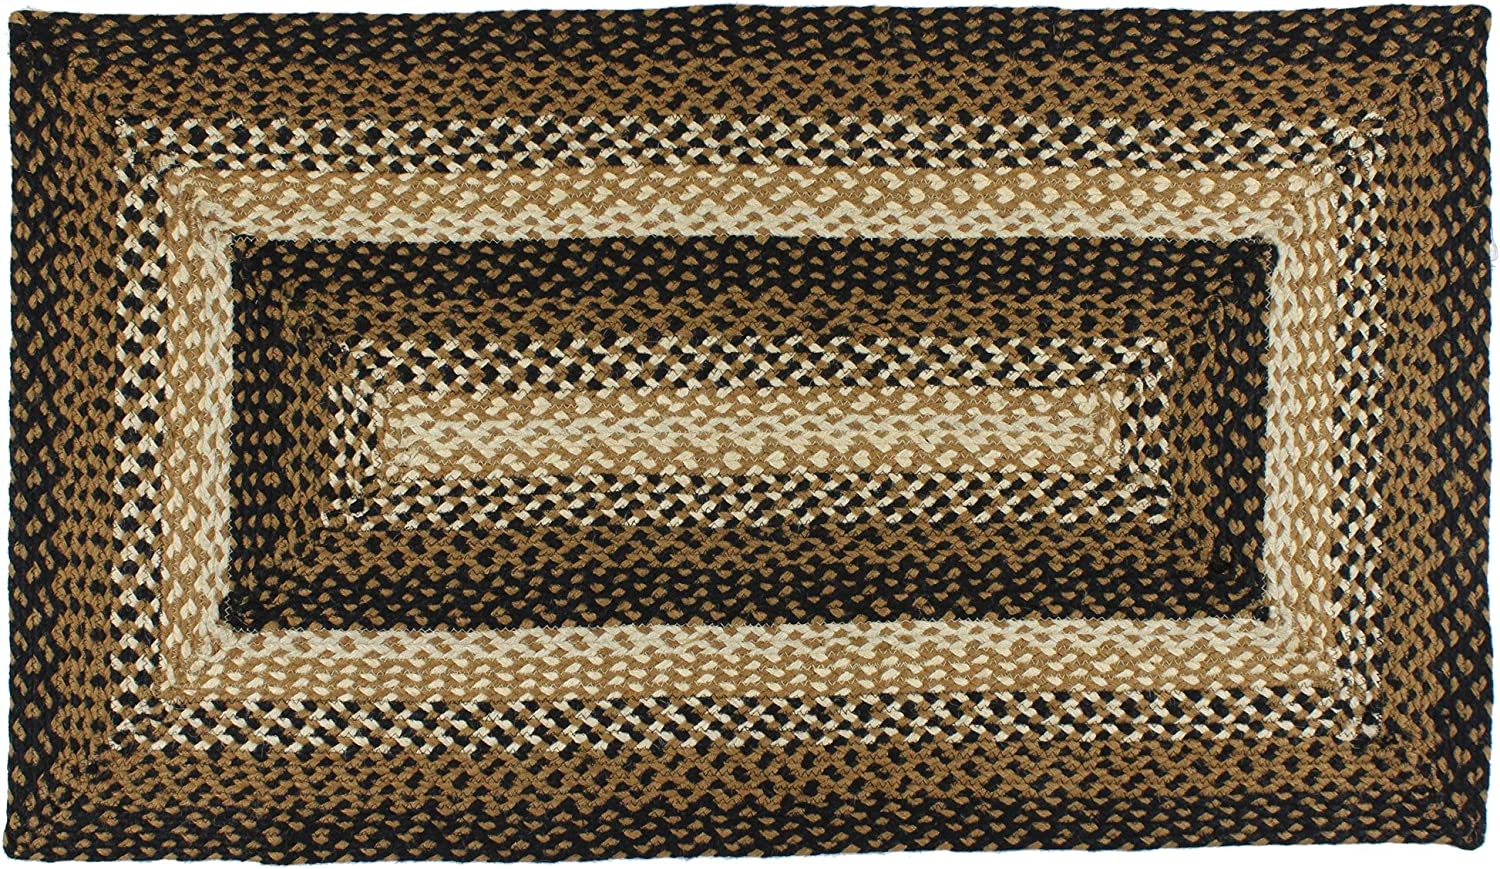 IHF Home Decor Stallion Rectangle Accent Braided Area Rug | Natural Jute Material Handmade Floor Carpet | Black, Mustard, Cream Woven Collection (36